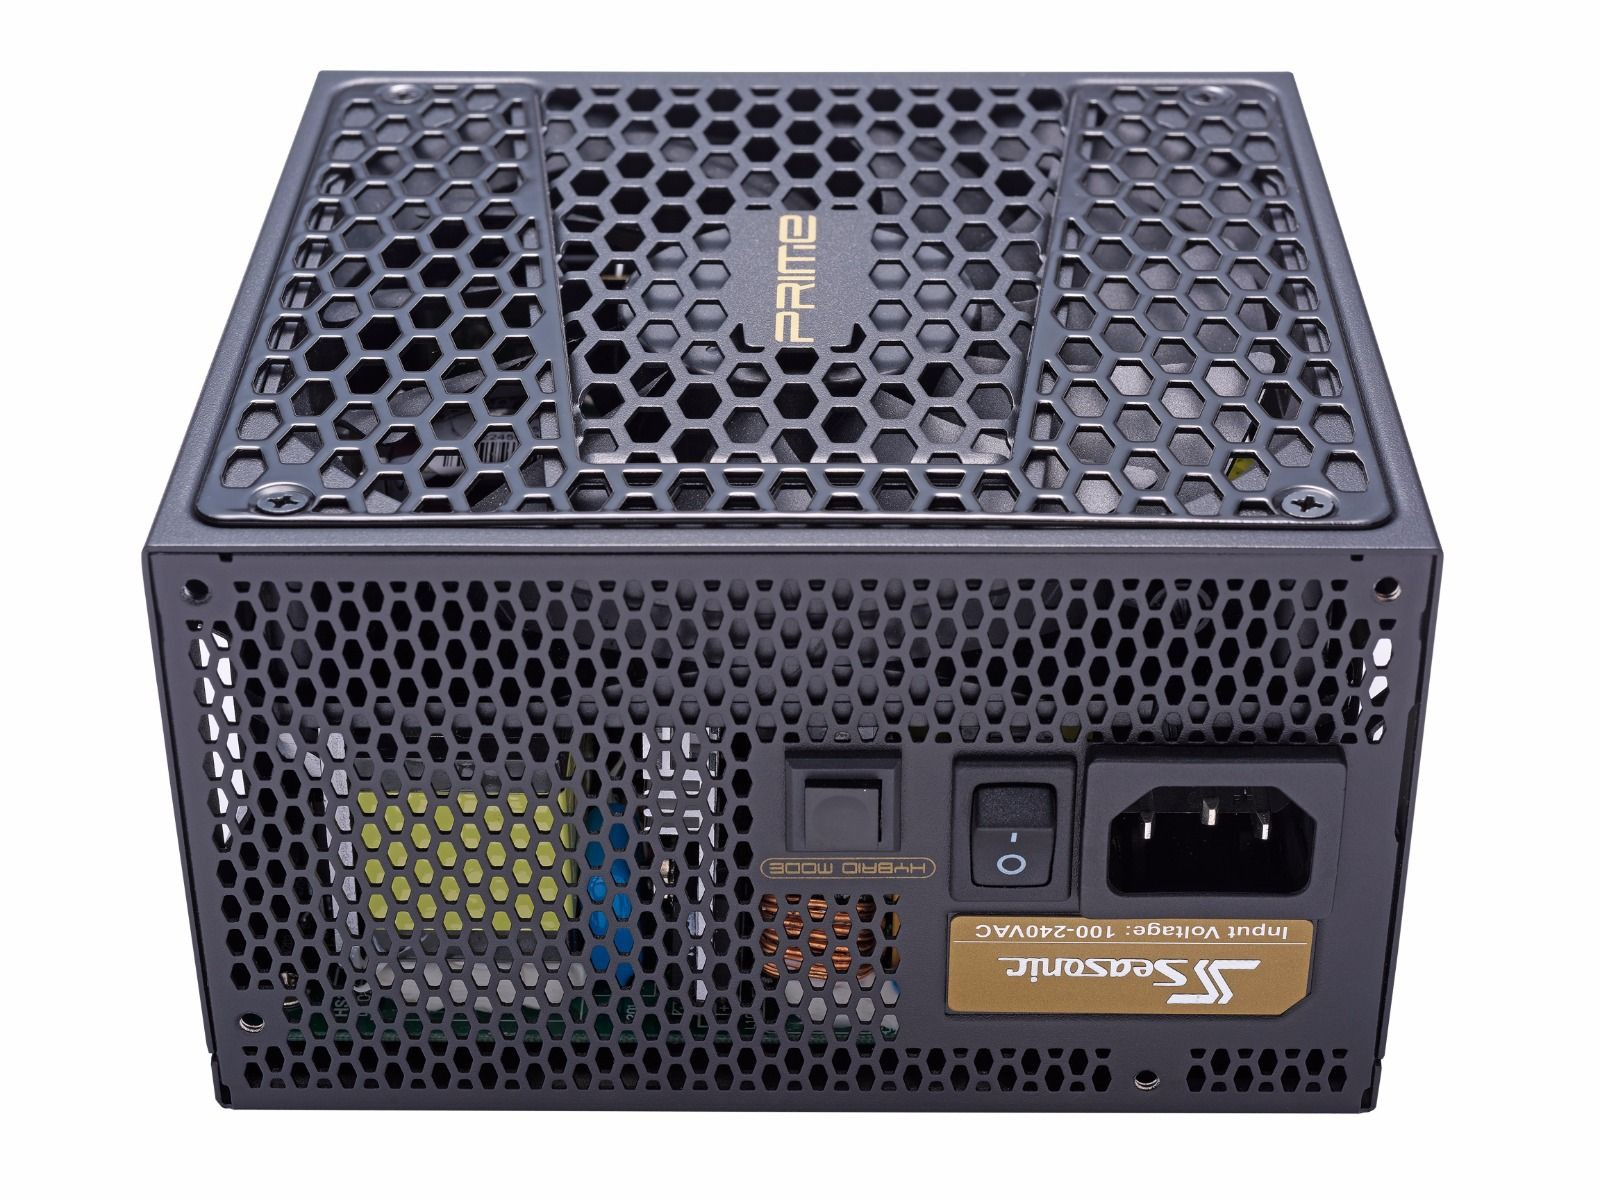 Блок питания 650W Seasonic Prime Ultra Gold (SSR-650GD2) (135мм, 24+8pin, 4x6/8pin, 6хSATA, 3xMolex, 80 PLUS Gold)